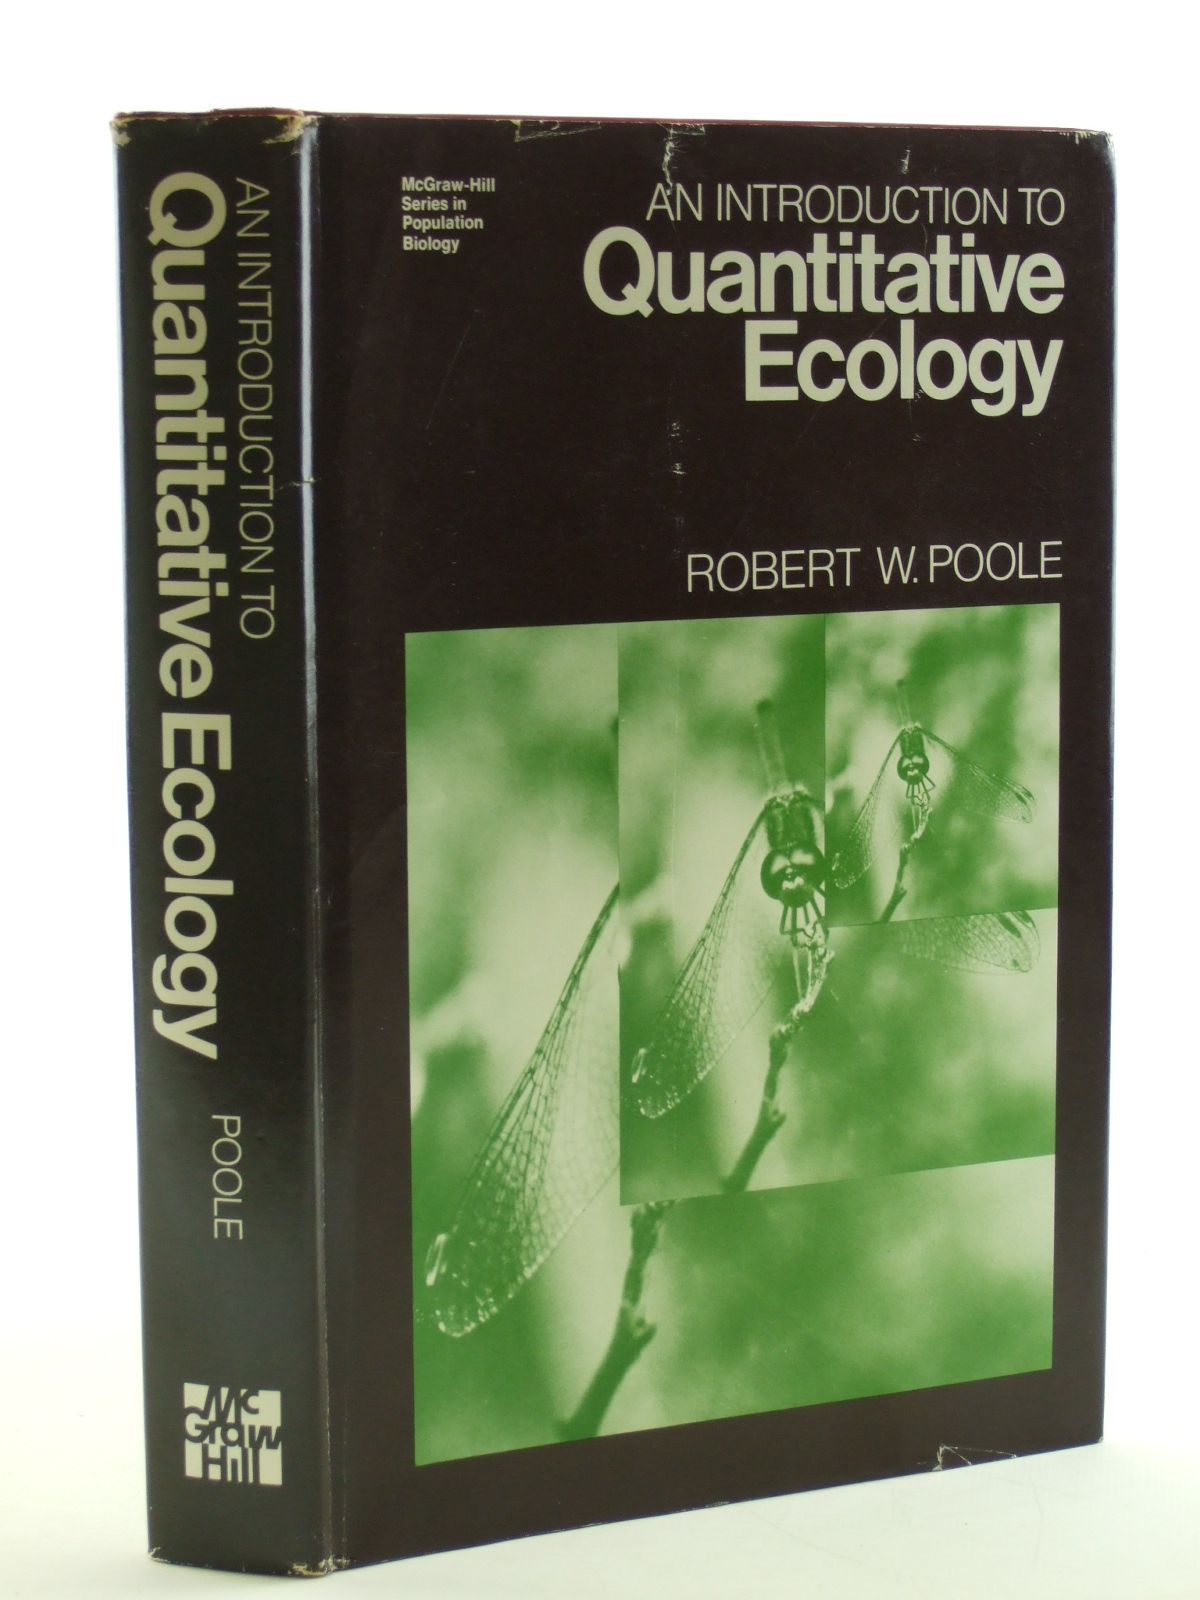 Photo of AN INTRODUCTION TO QUANTITATIVE ECOLOGY written by Poole, Robert W. published by McGraw-Hill (STOCK CODE: 1602947)  for sale by Stella & Rose's Books